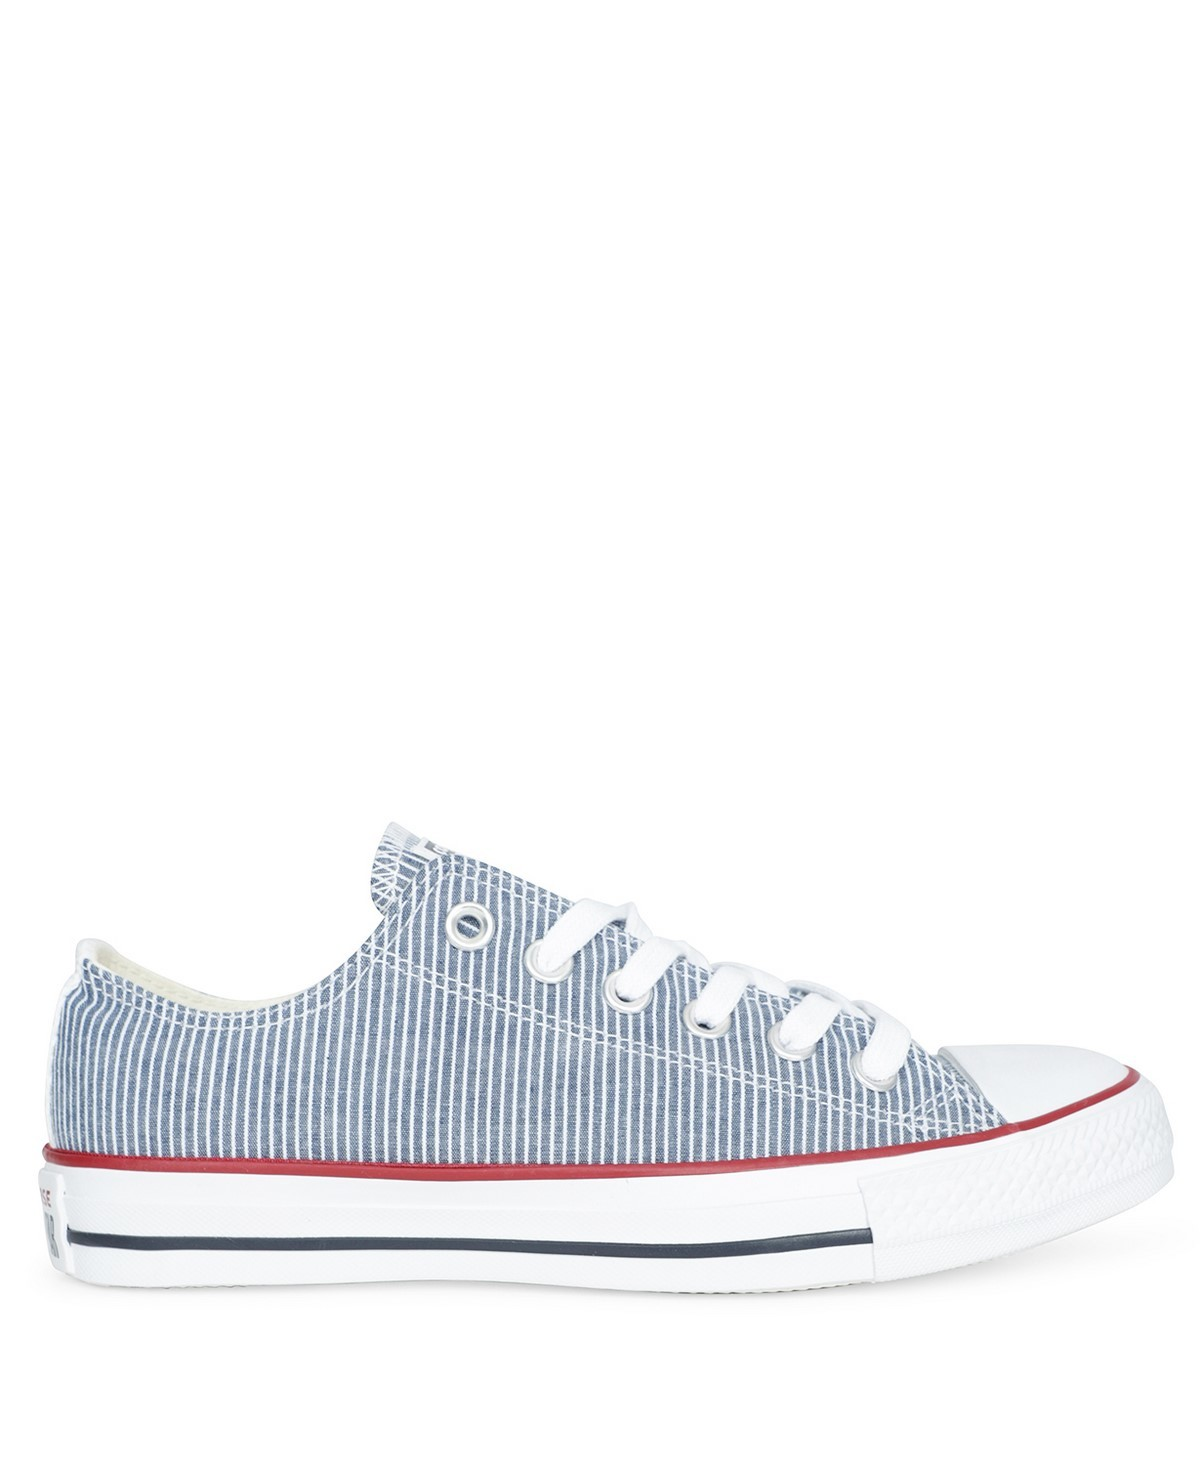 Converse Lage sneaker Wit CTAS OX